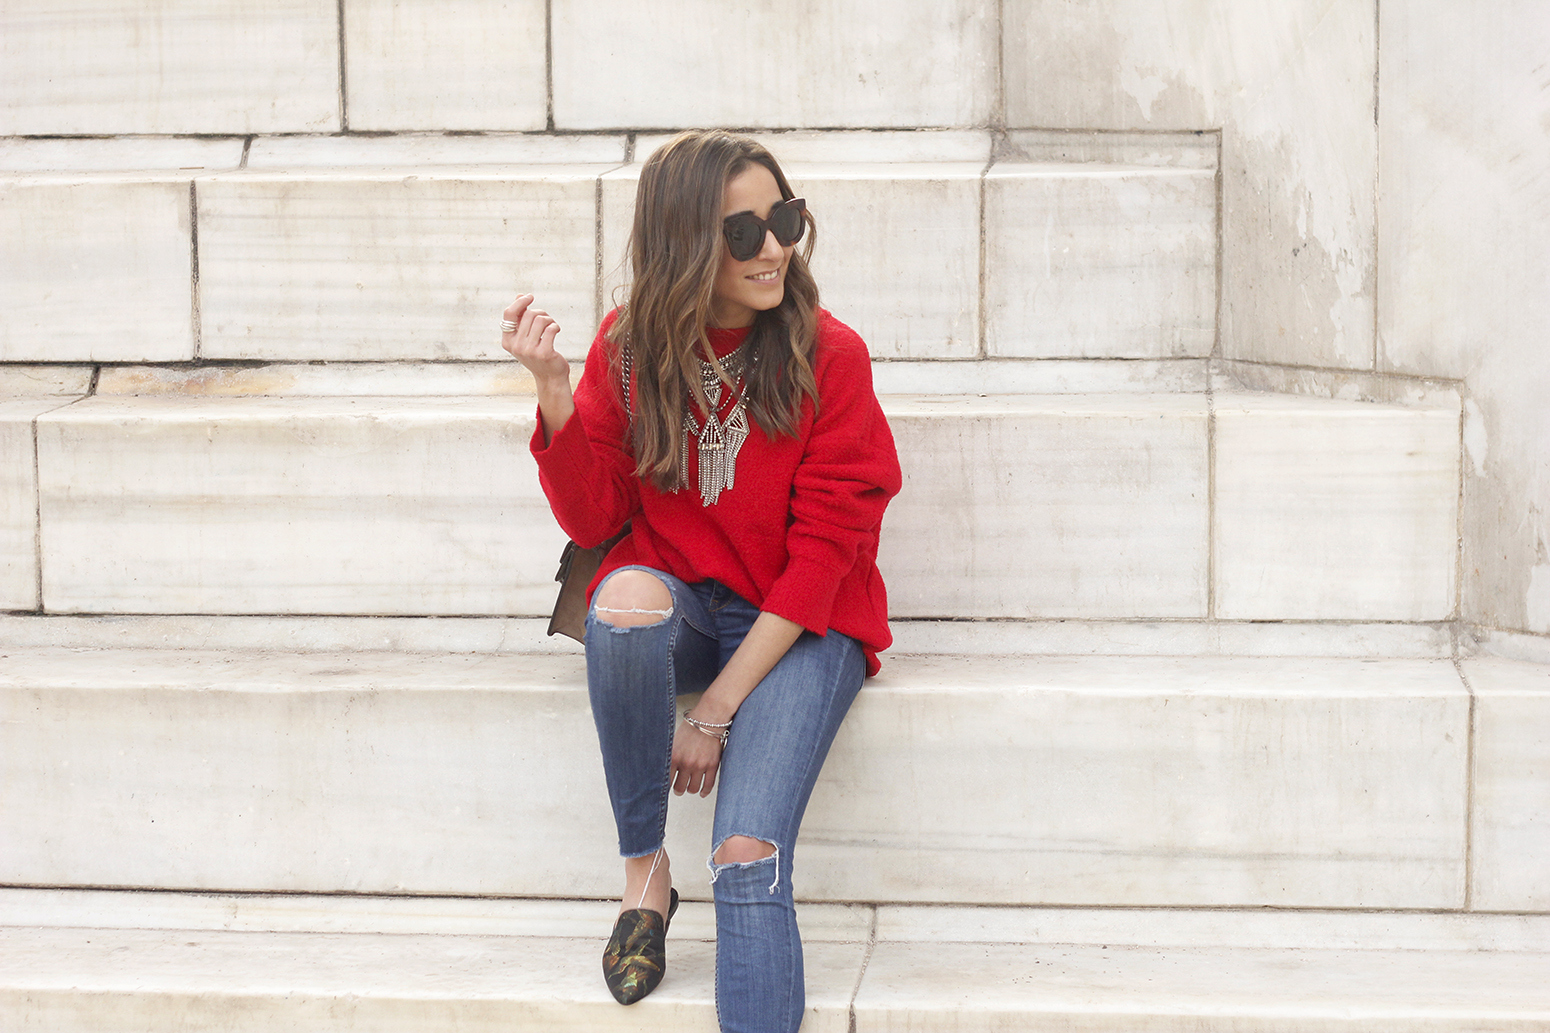 Mules Red sweater Ripped Jeans gucci bag céline sunnies fashion outfit style trend07